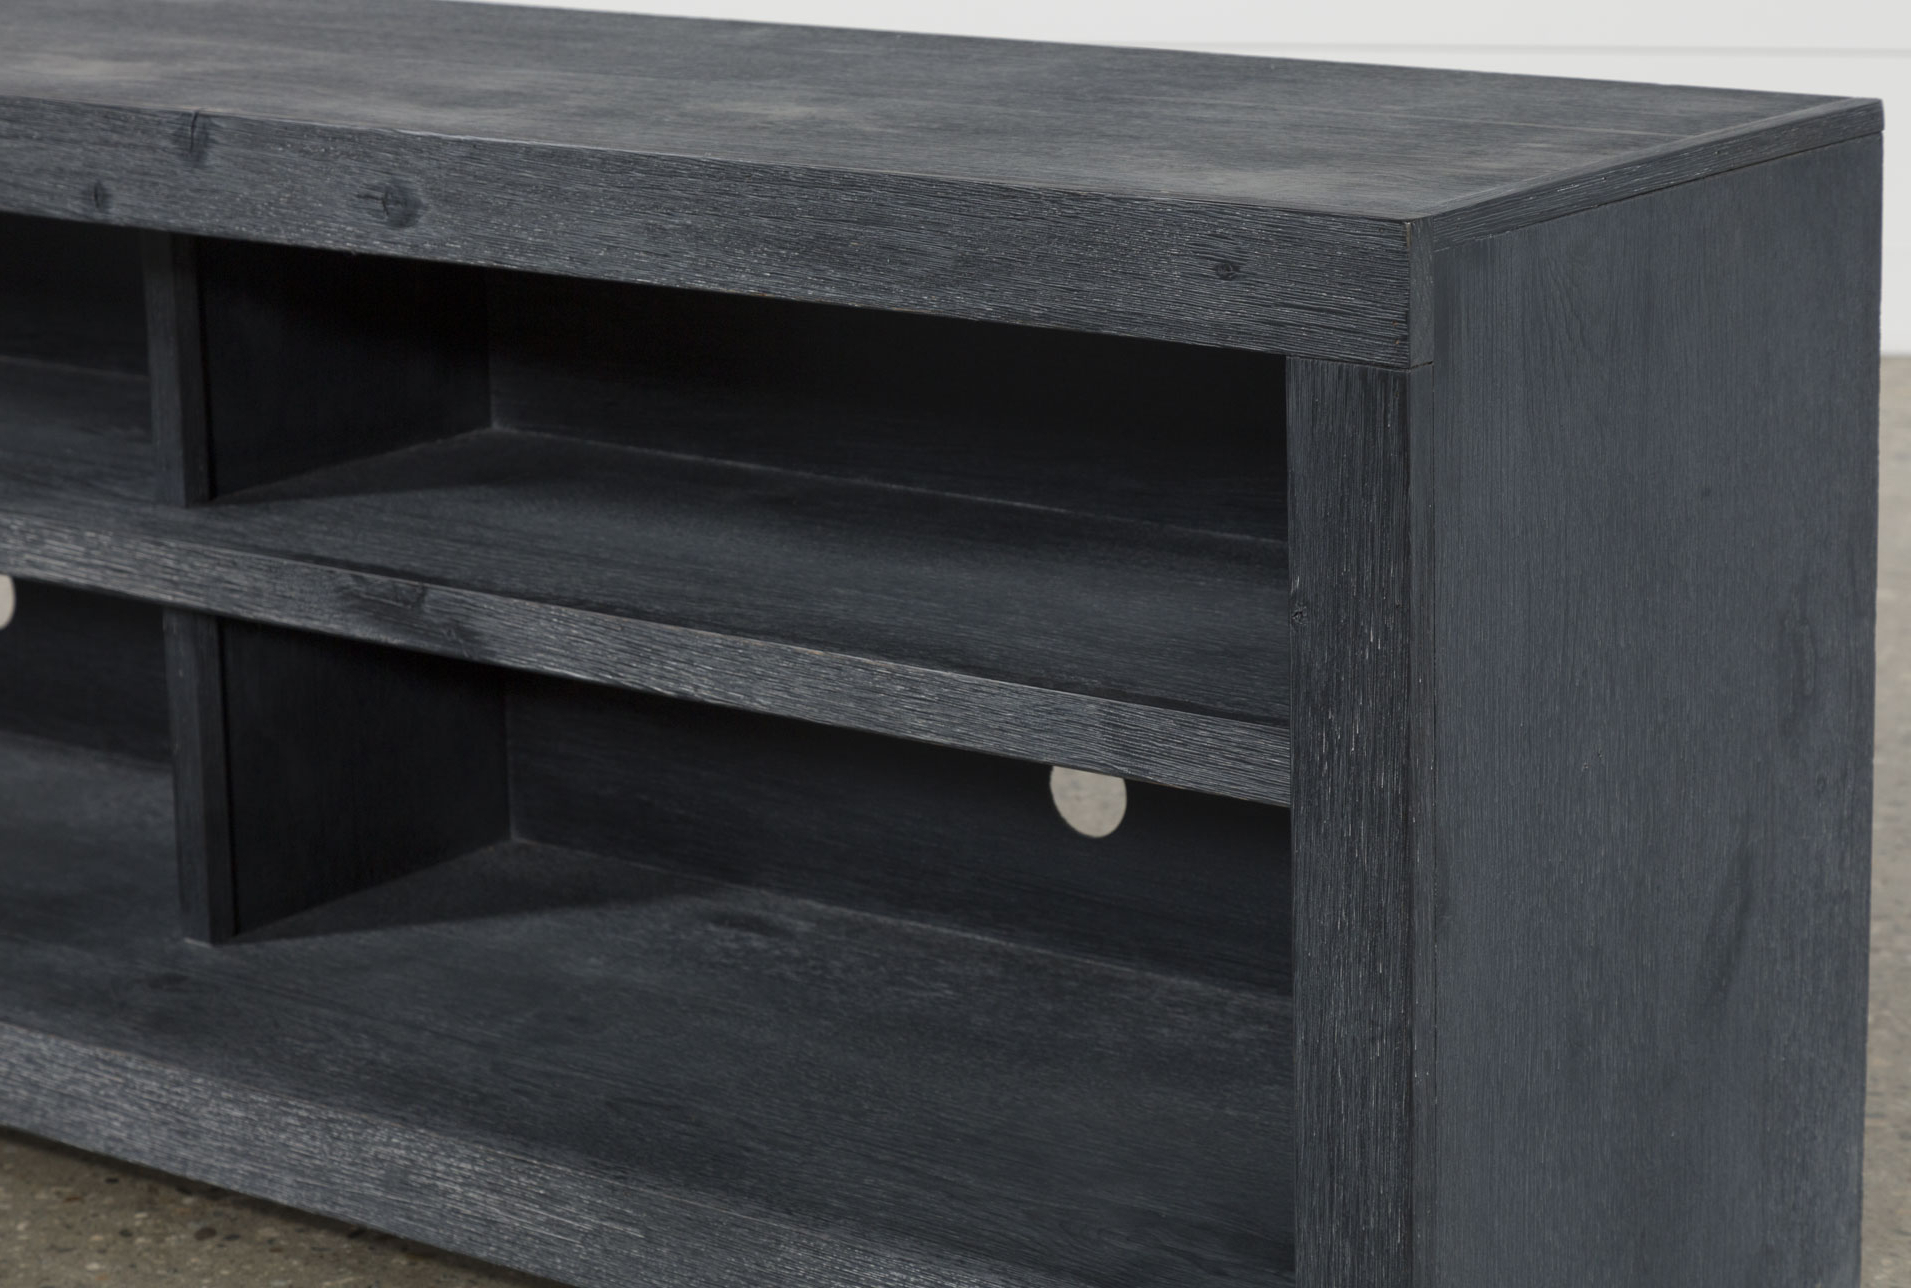 Kilian Black 74 Inch Tv Stand | Products | Pinterest | Black In Kilian Black 74 Inch Tv Stands (View 2 of 20)